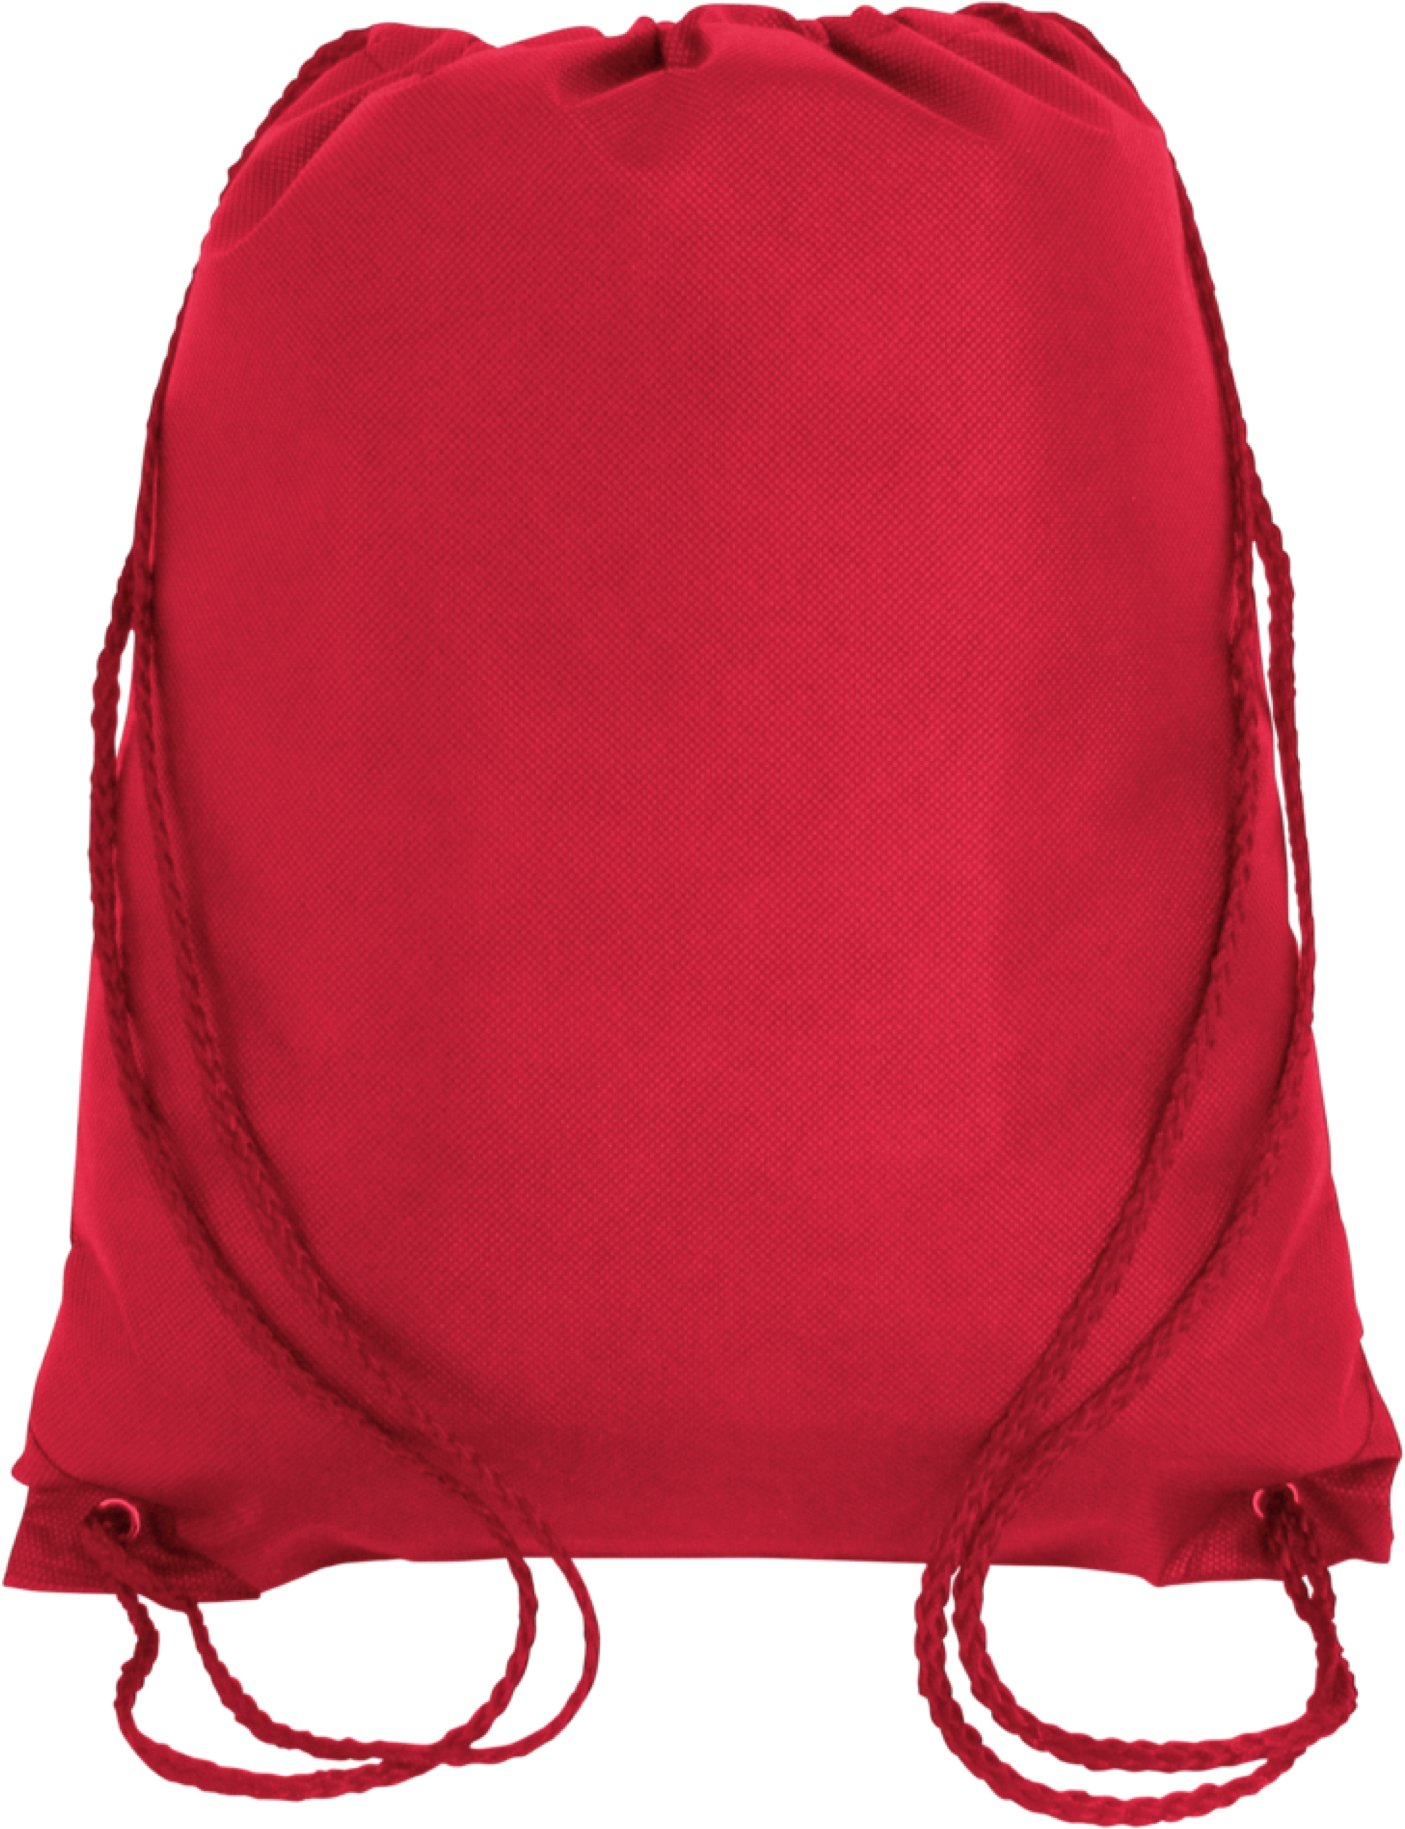 Promotional Non-Woven Drawstring Backpacks for Giveaway Favors or Daily Use, Red, Set of 50